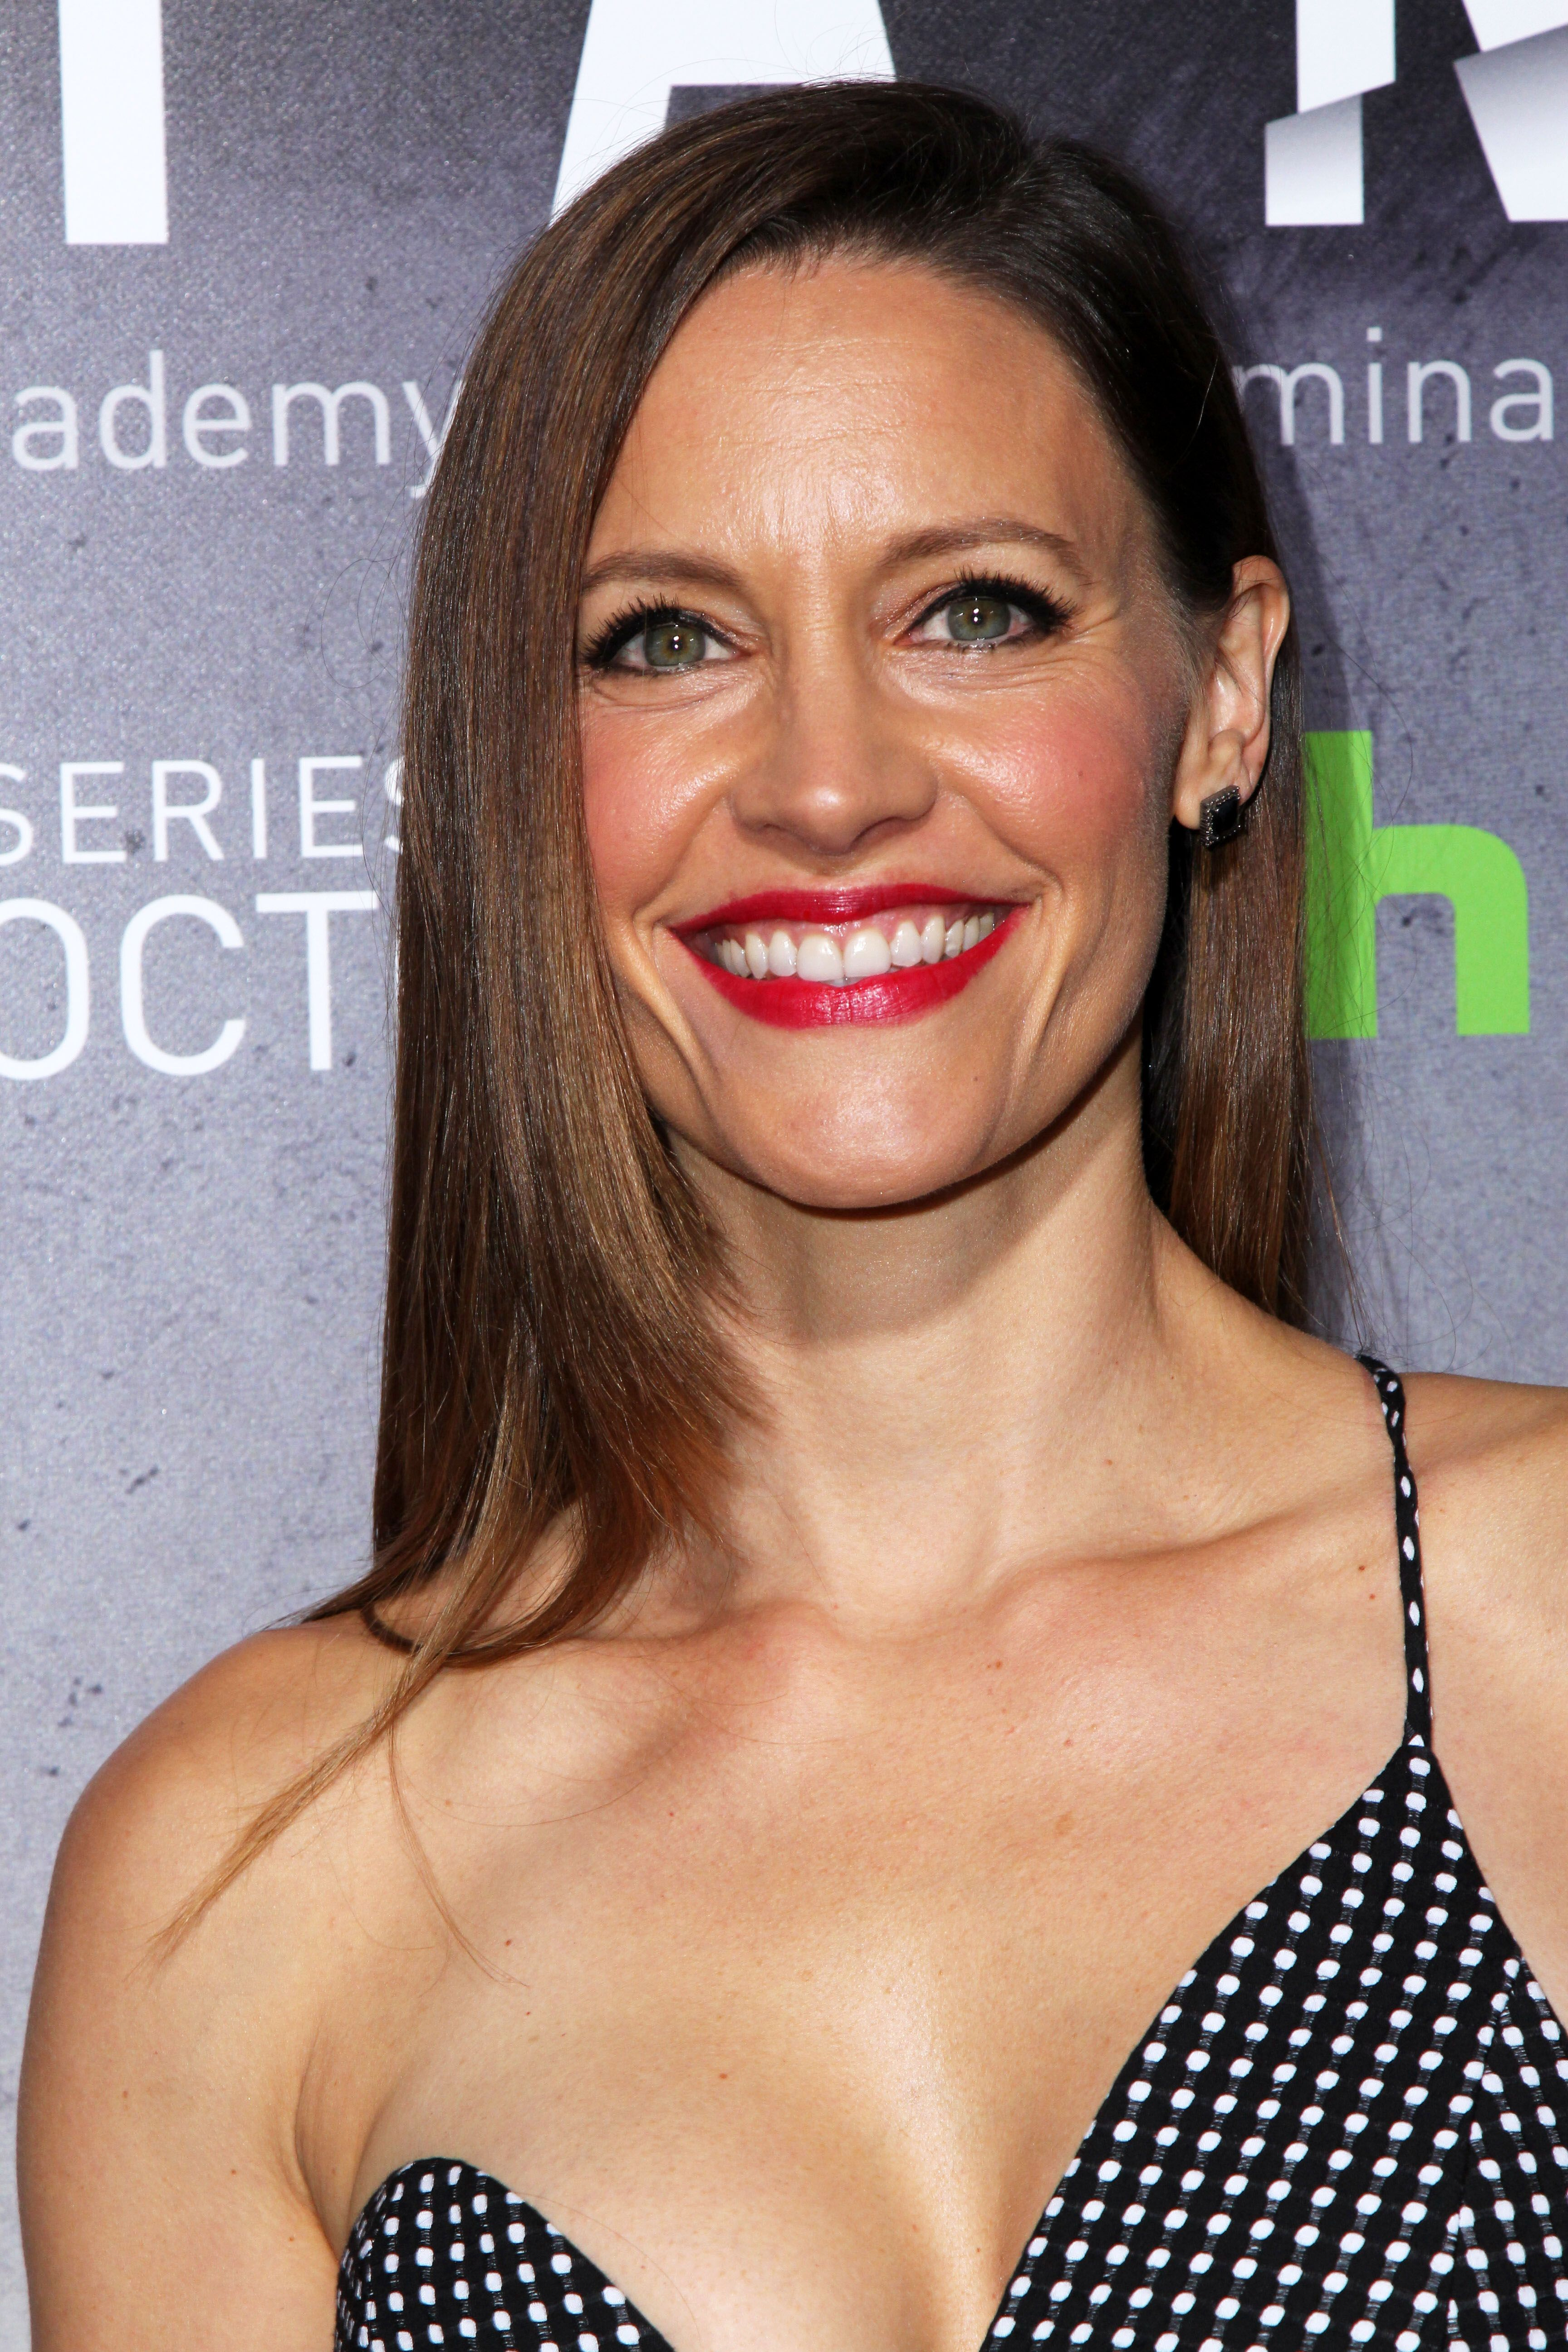 KaDee Strickland naked (62 photo), Ass, Sideboobs, Instagram, cleavage 2015